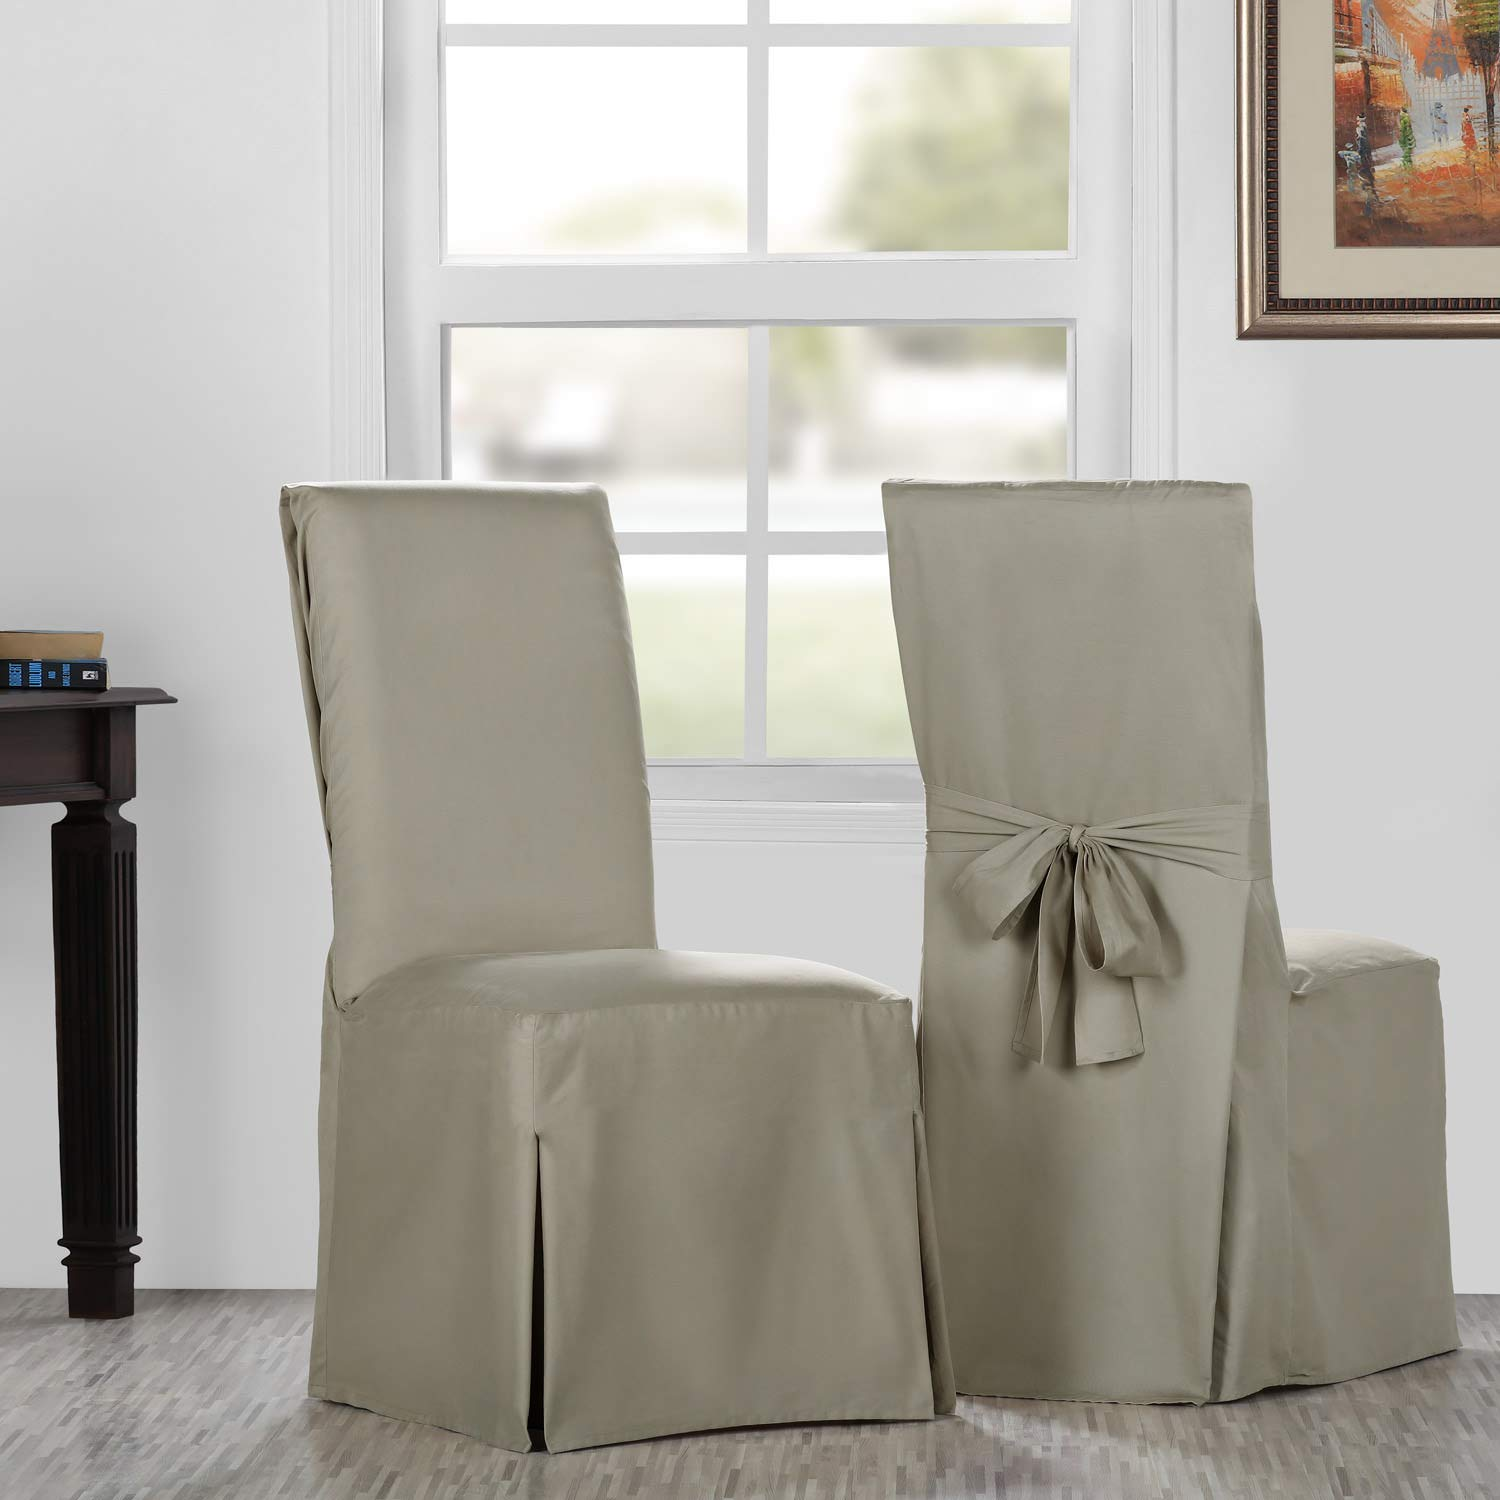 HPD Half Price Drapes PRCT-LS09-CC-L-PR Solid Cotton Twill Chair Covers (Sold As Pair), Sandstone